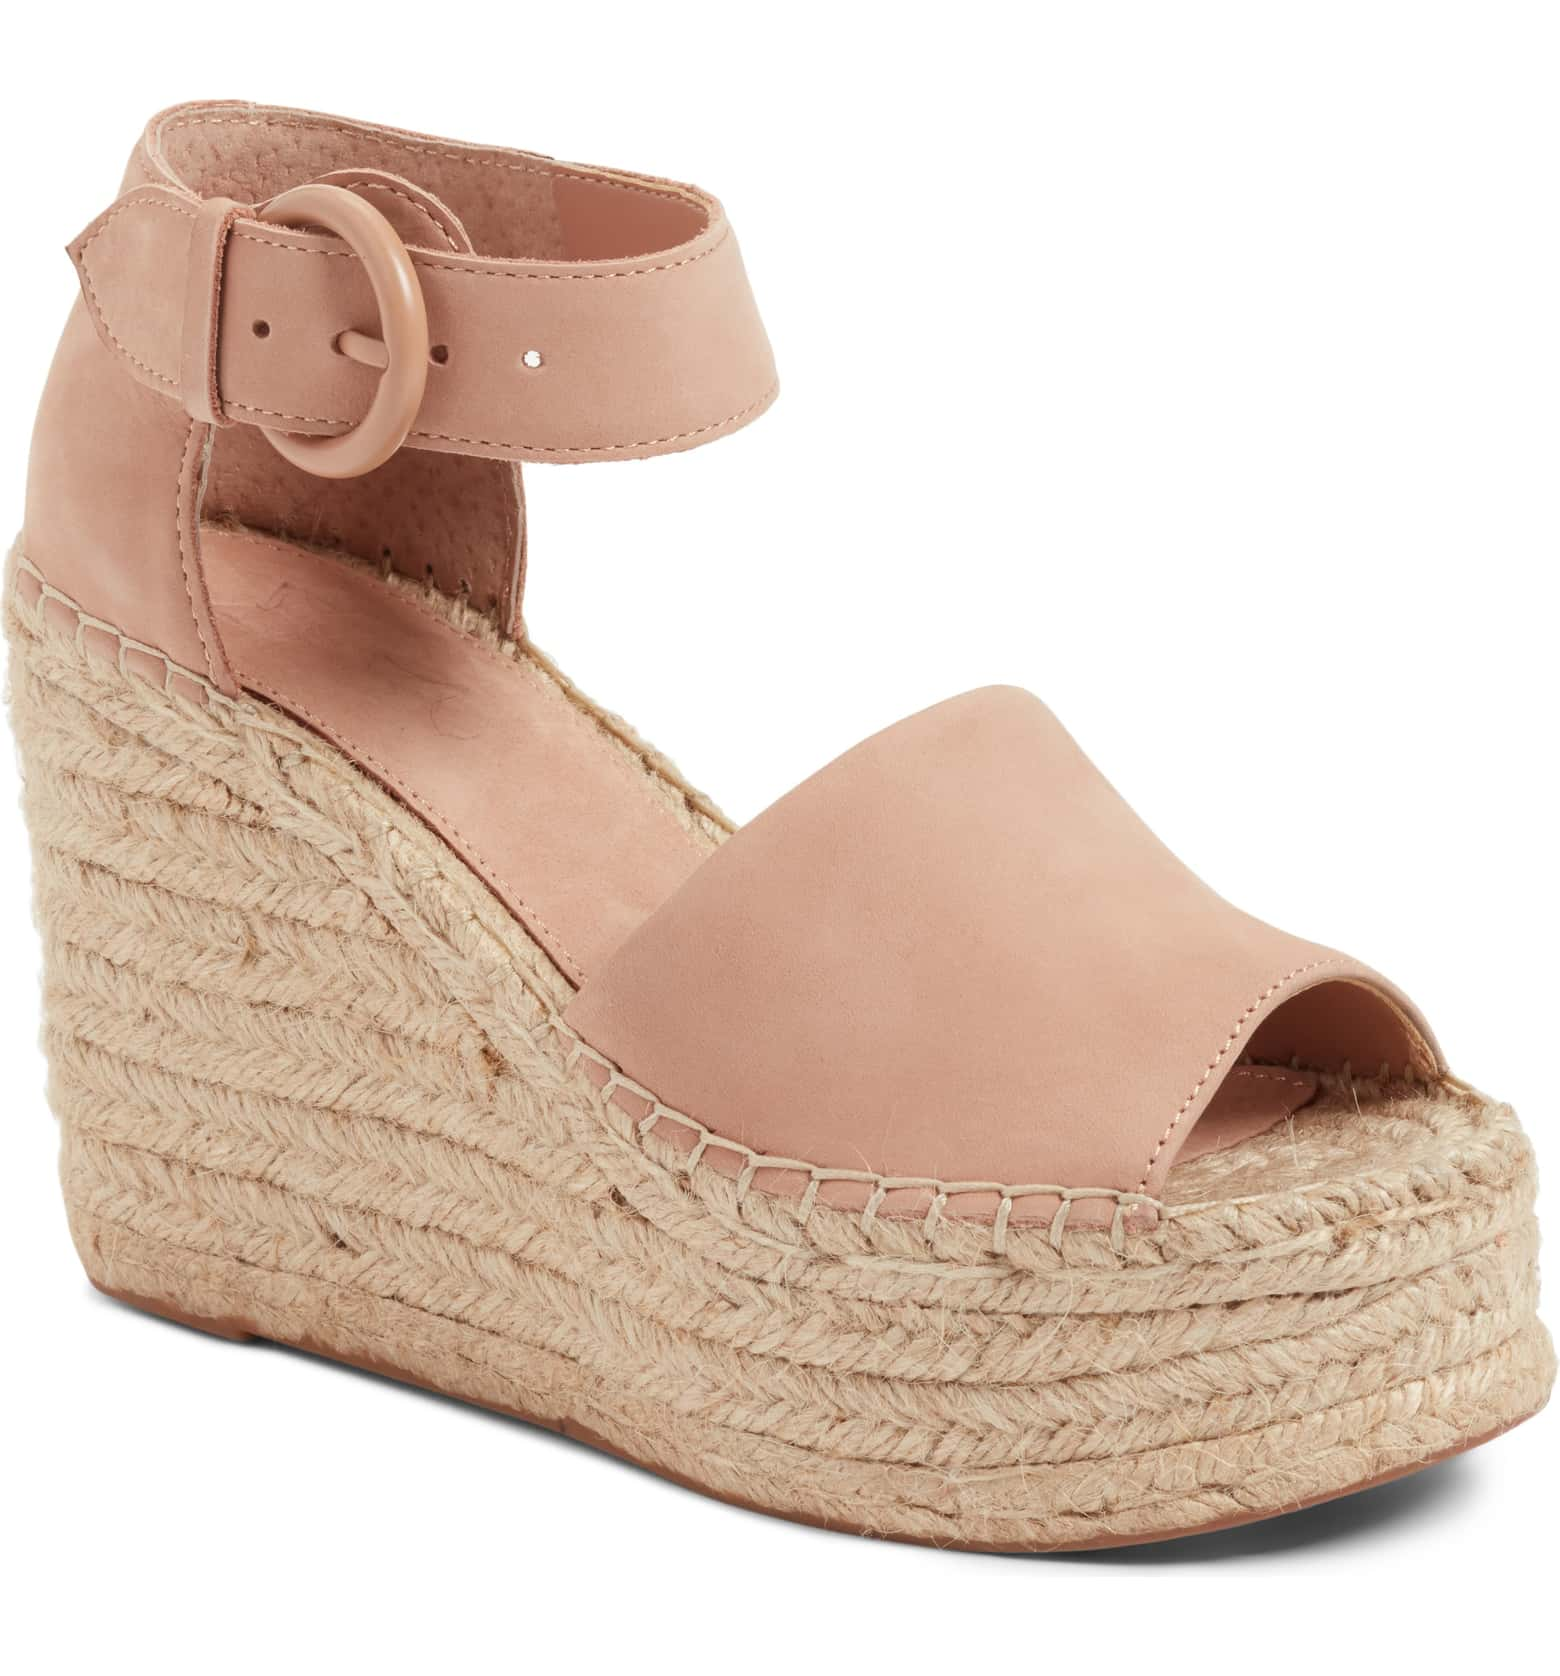 blush wedges.jpg